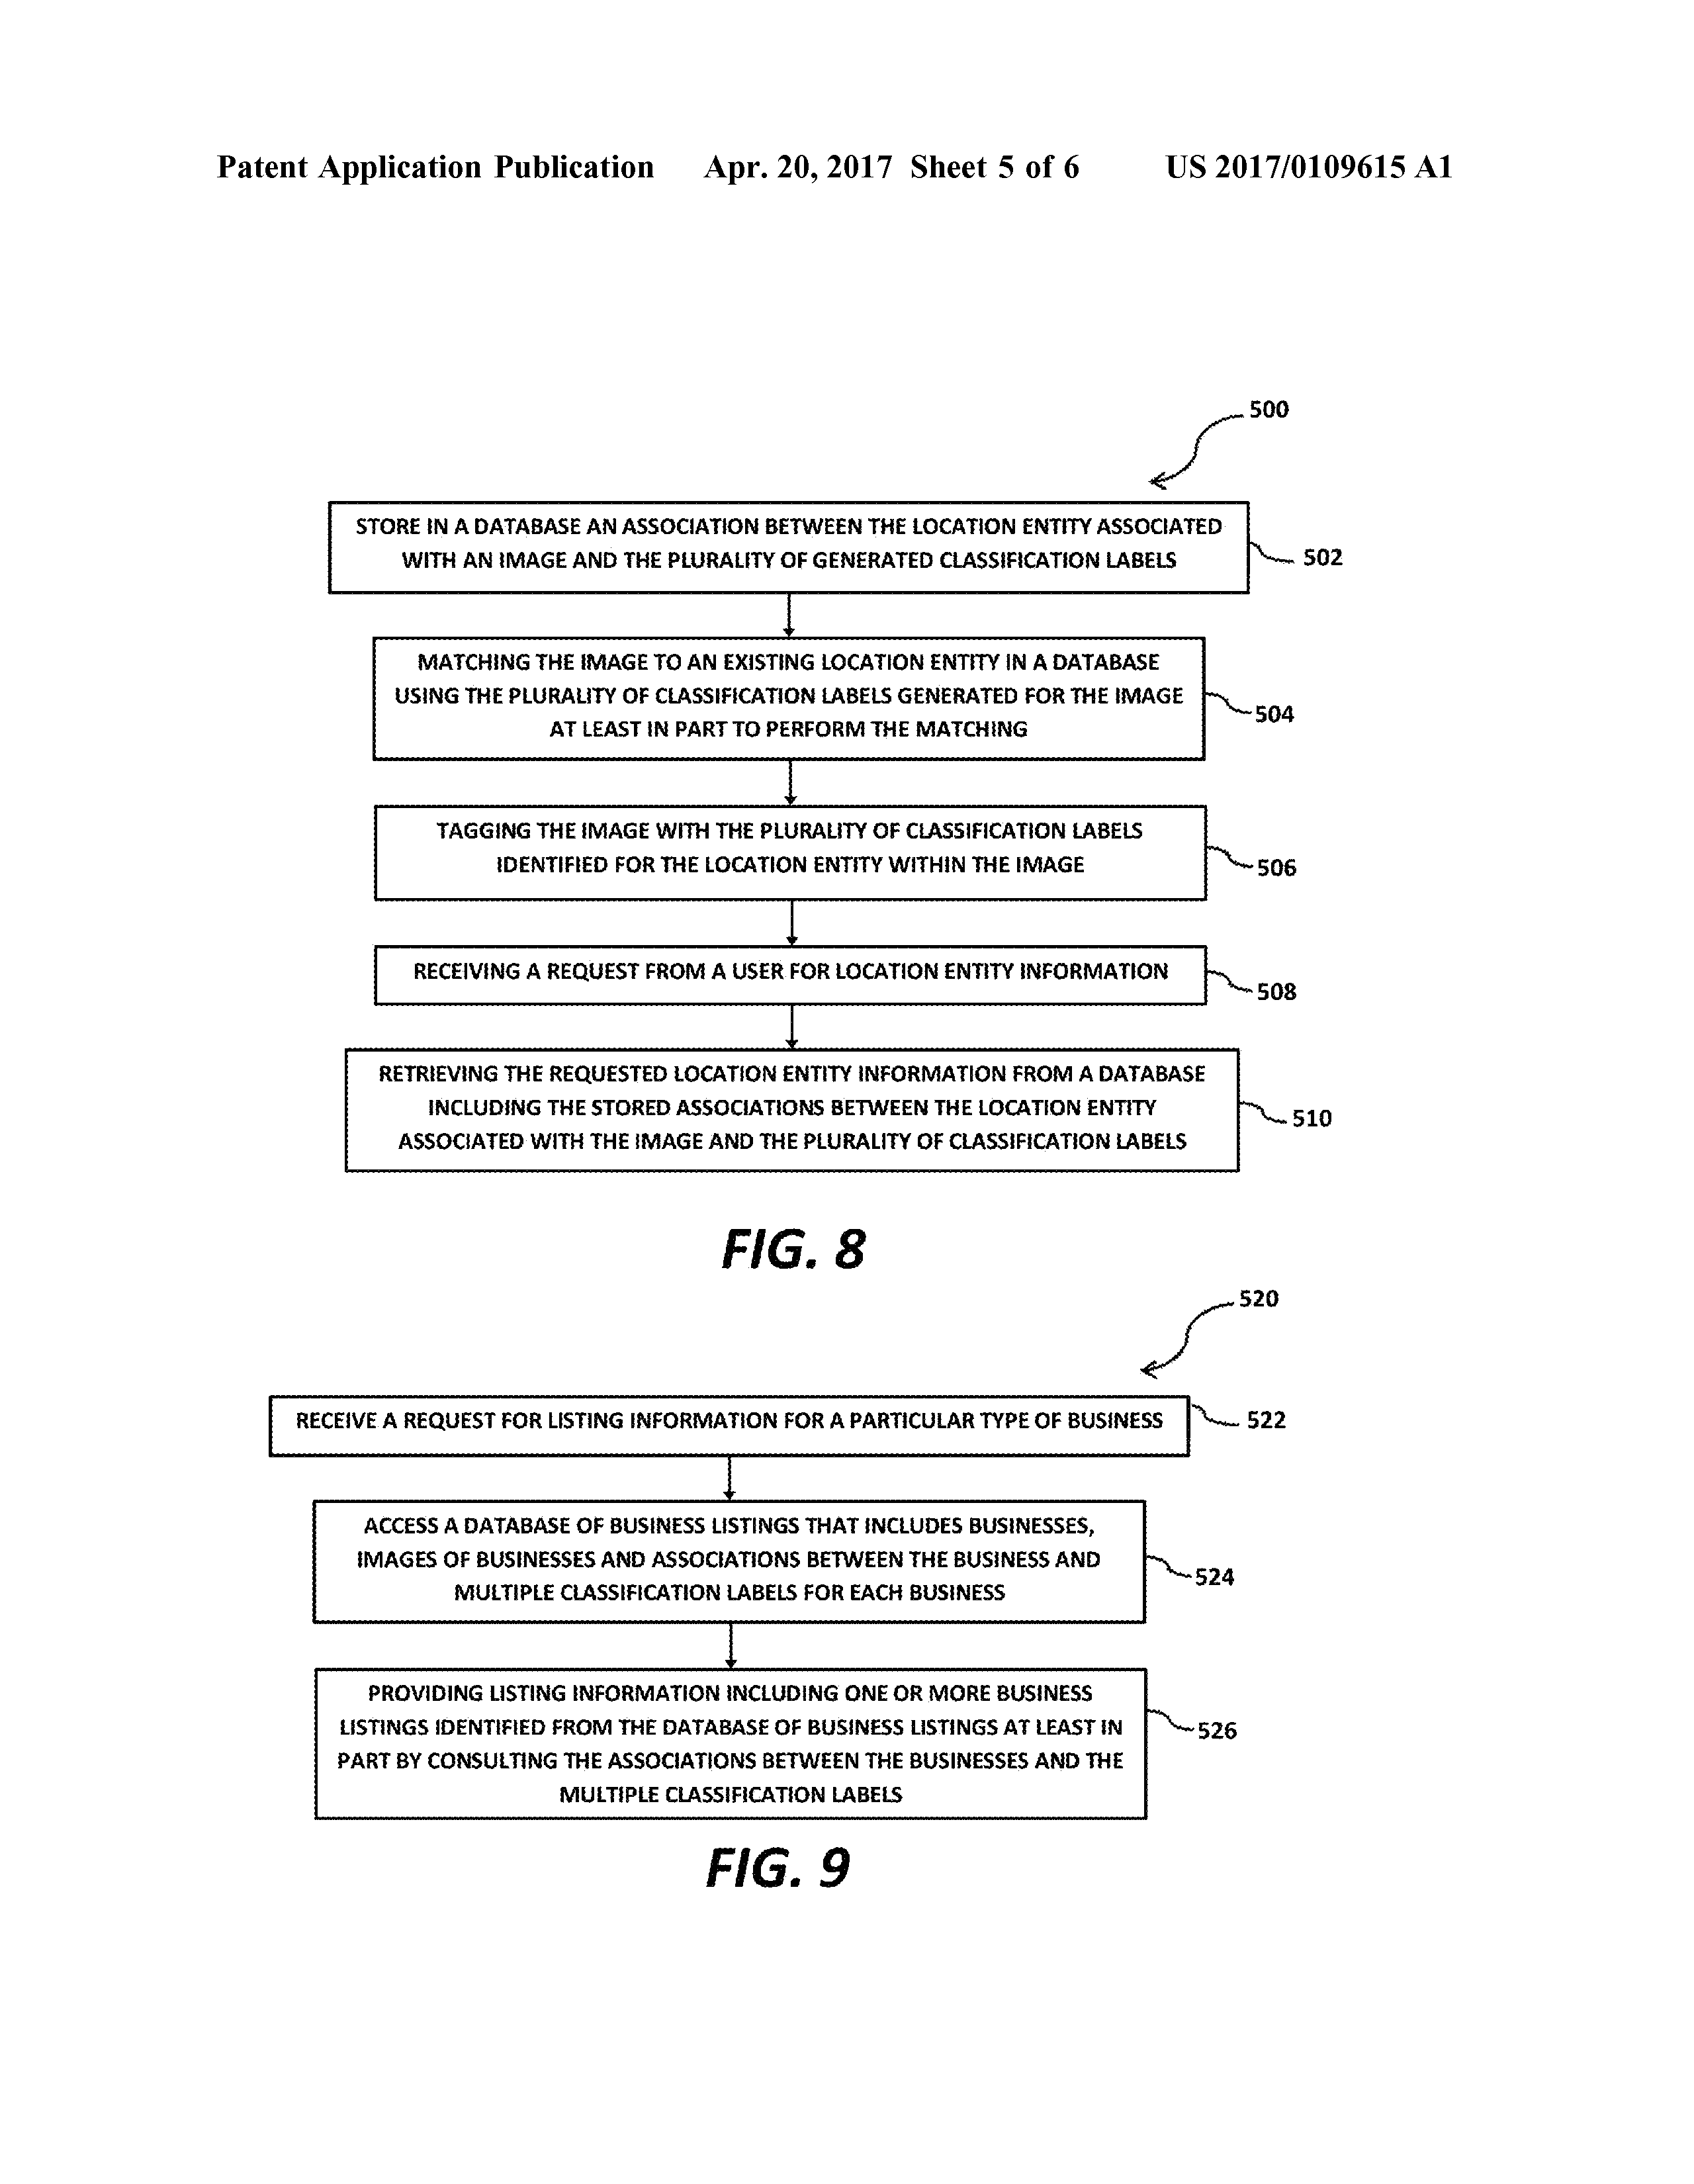 US 2017/0109615 A1 - Systems And Methods For Automatically